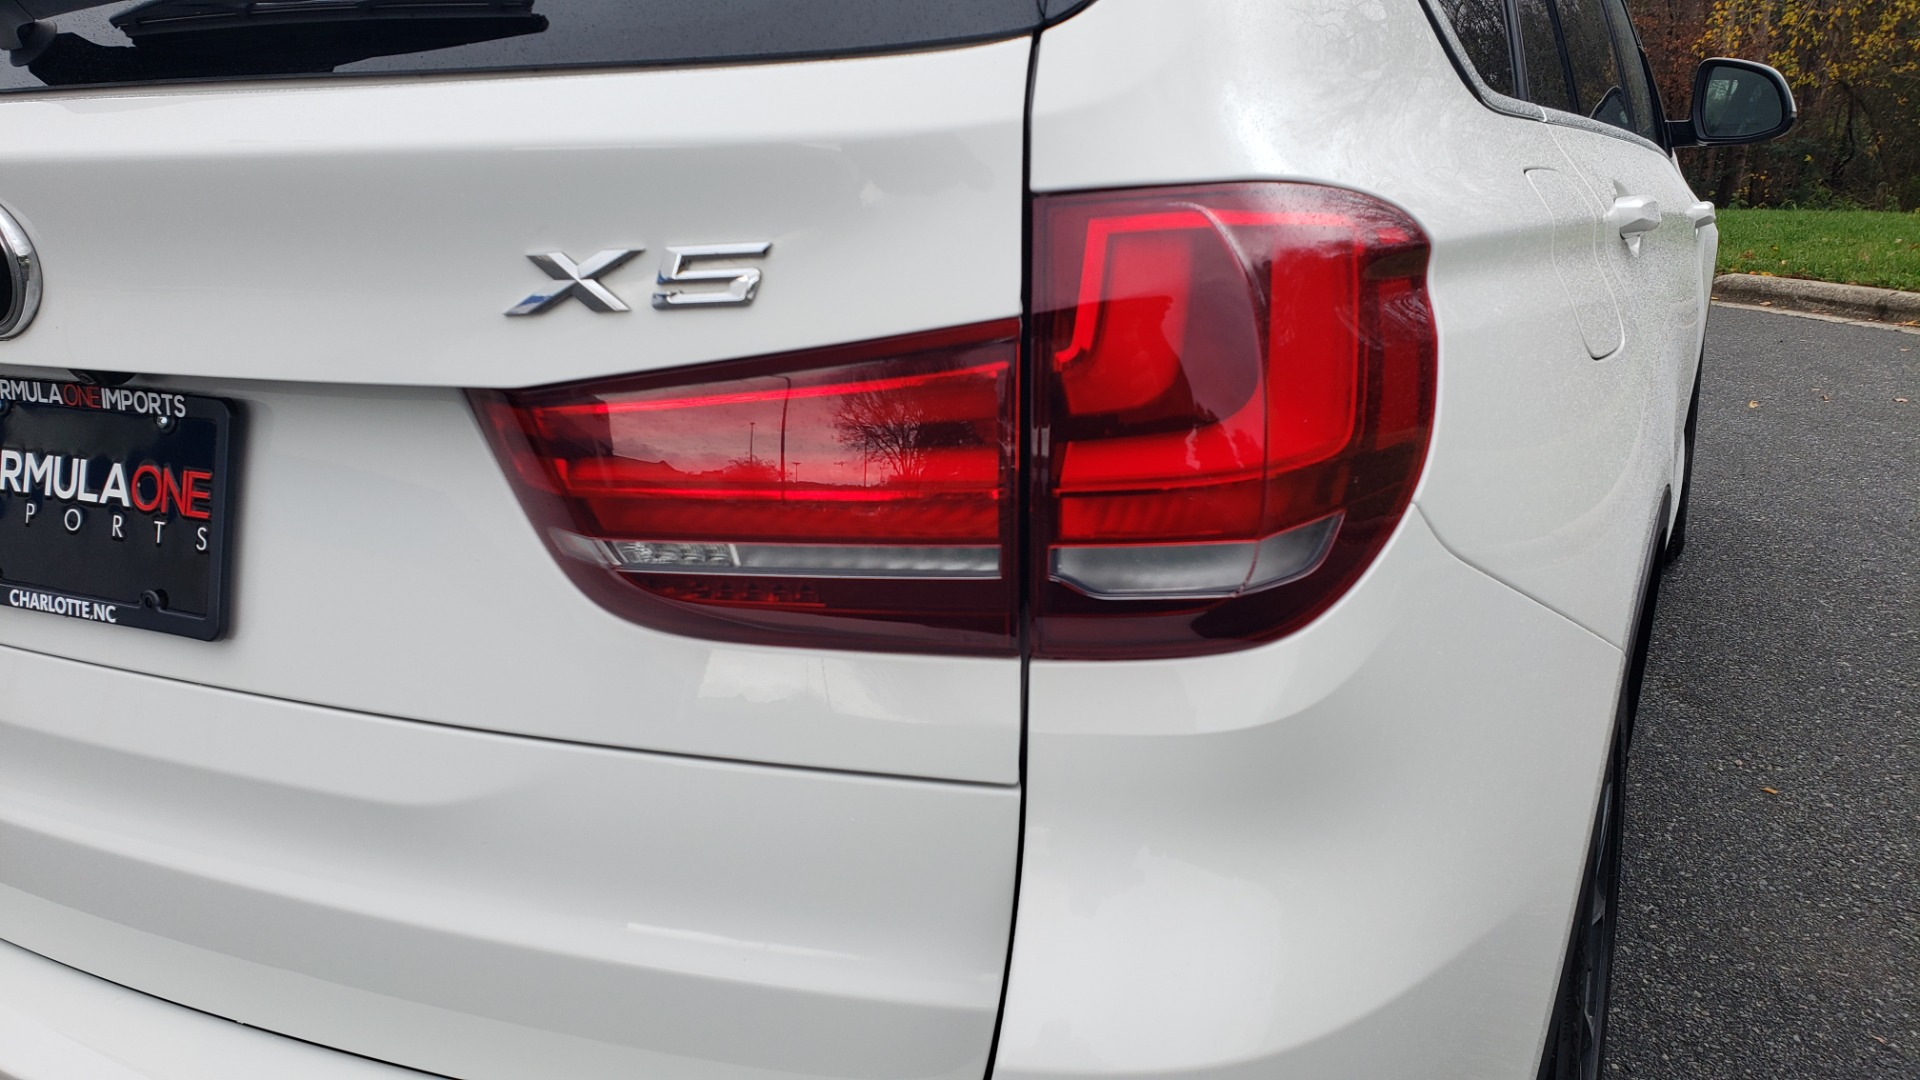 Used 2018 BMW X5 XDRIVE35I / AWD / NAV / HTD STS / SUNROOF / REARVIEW for sale Sold at Formula Imports in Charlotte NC 28227 28